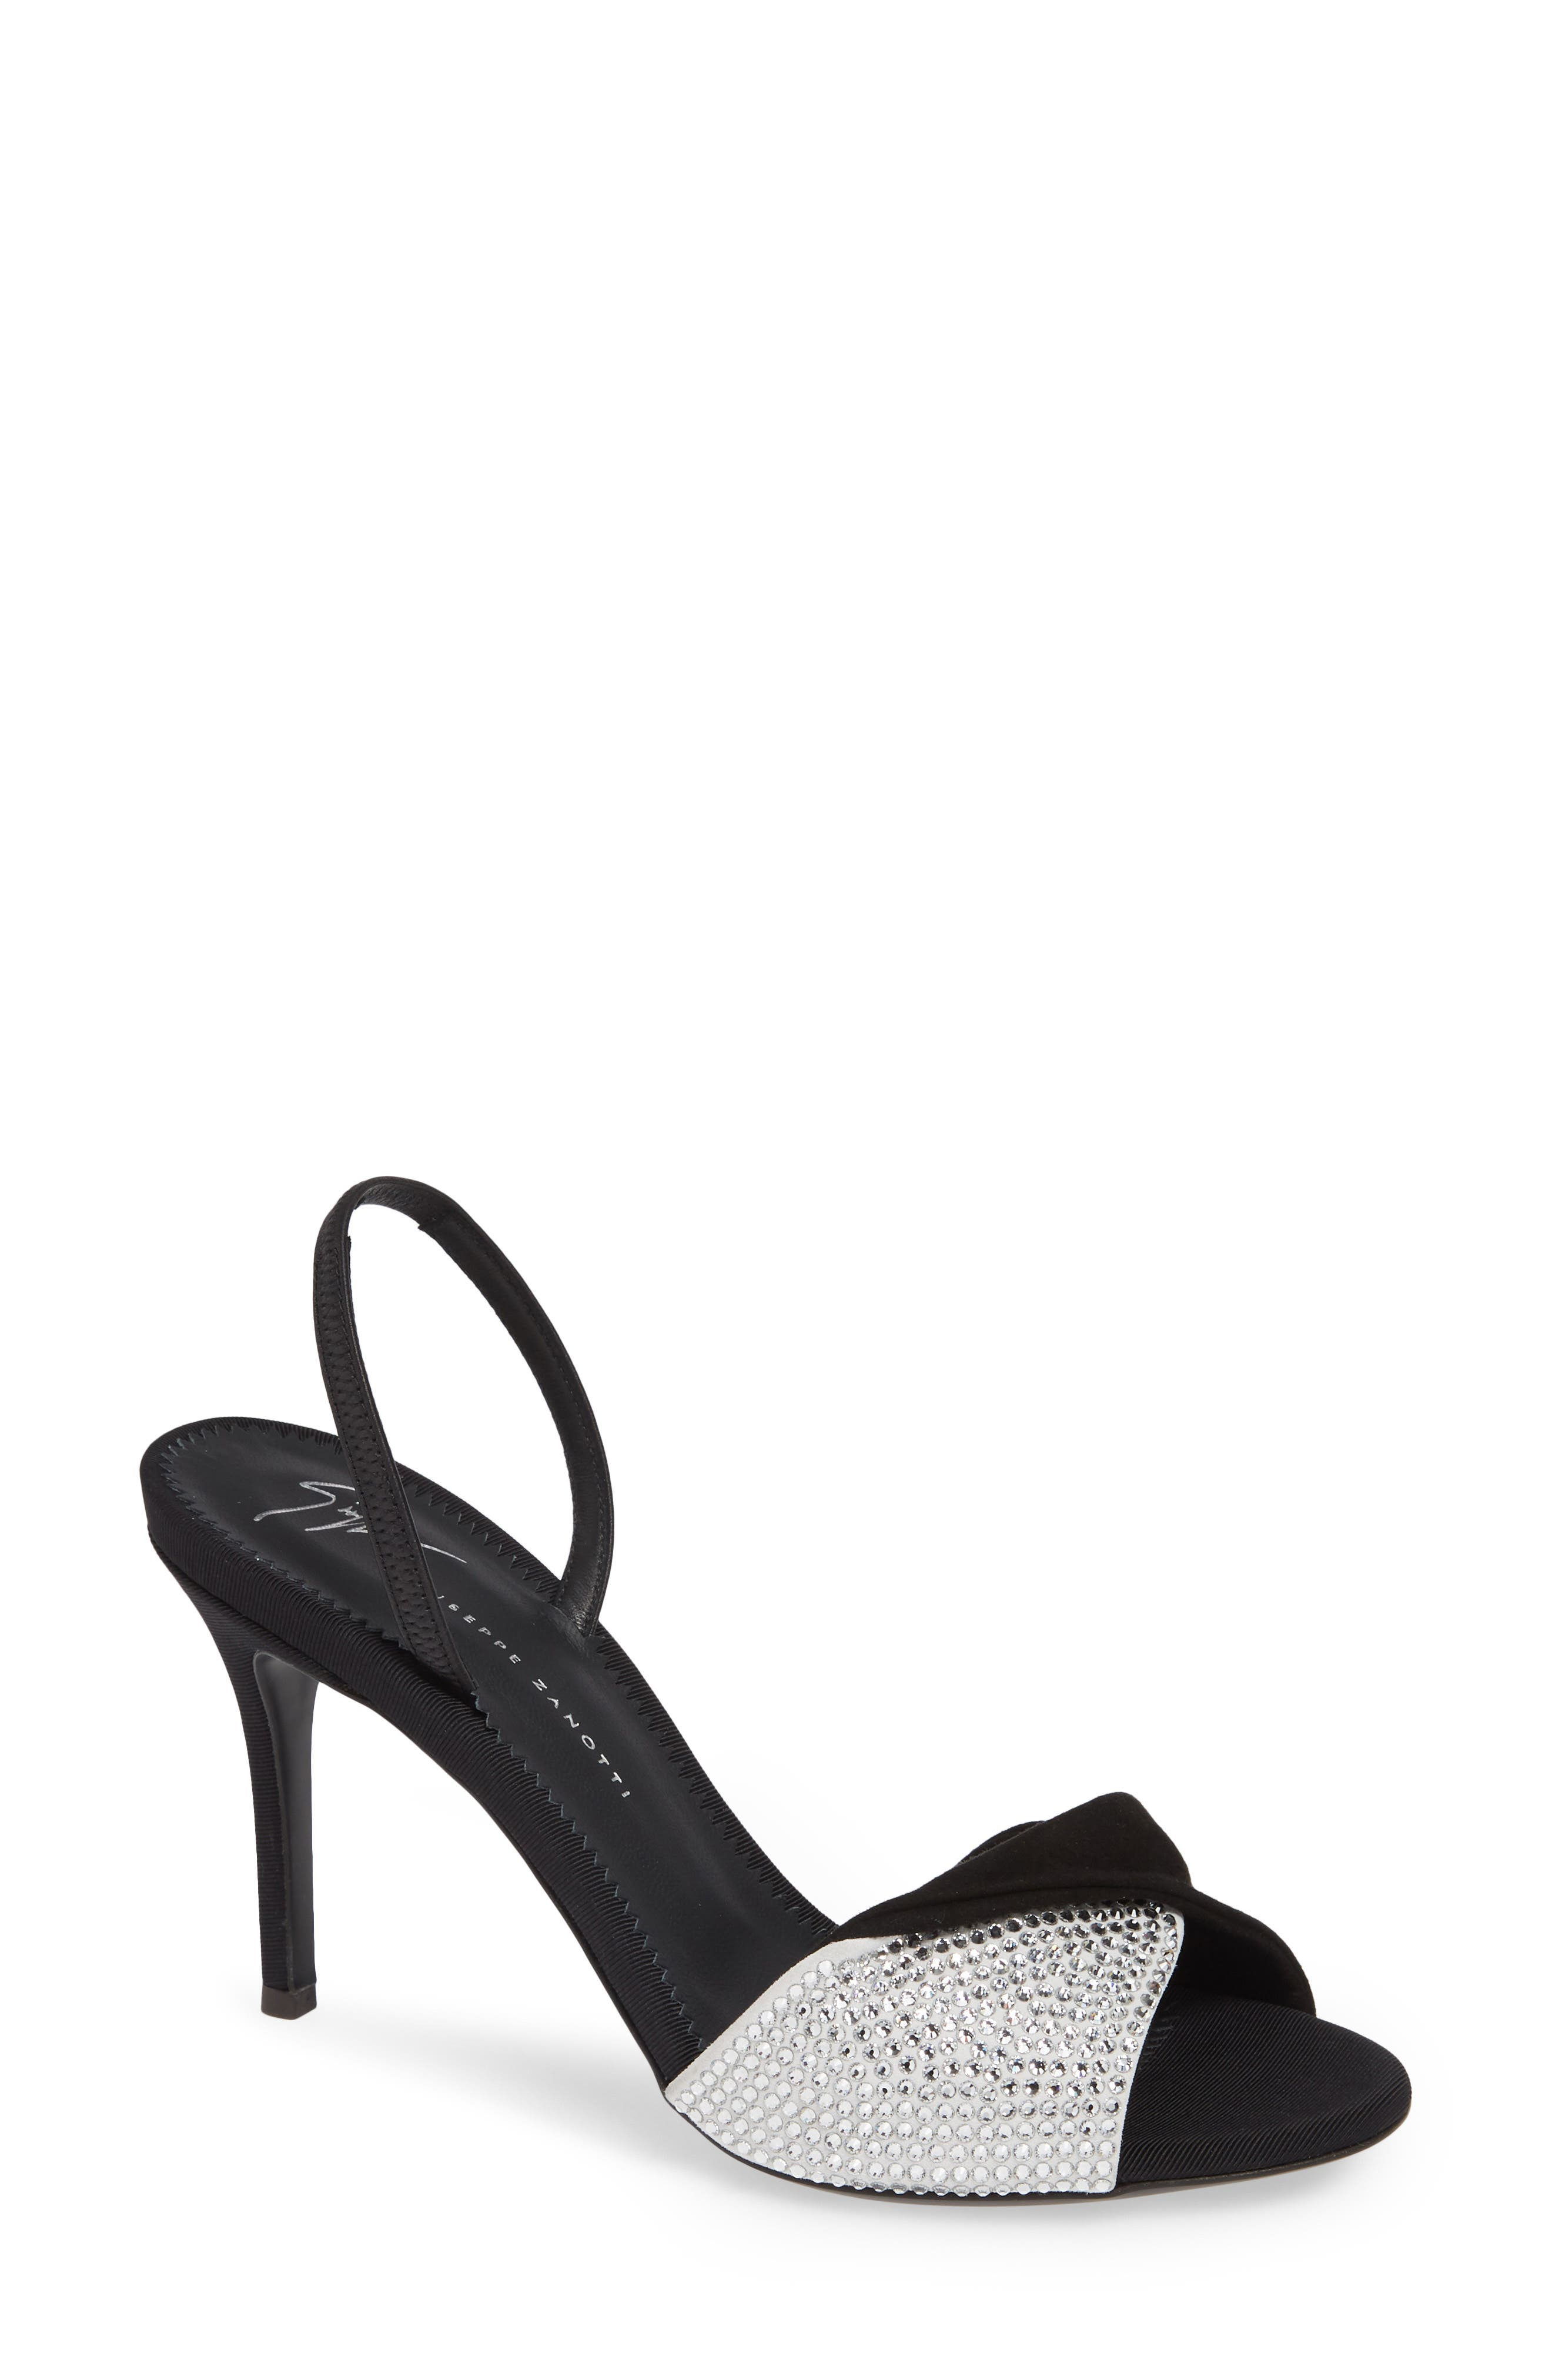 Swarovski Crystal Embellished Slingback Sandal,                         Main,                         color, BLACK